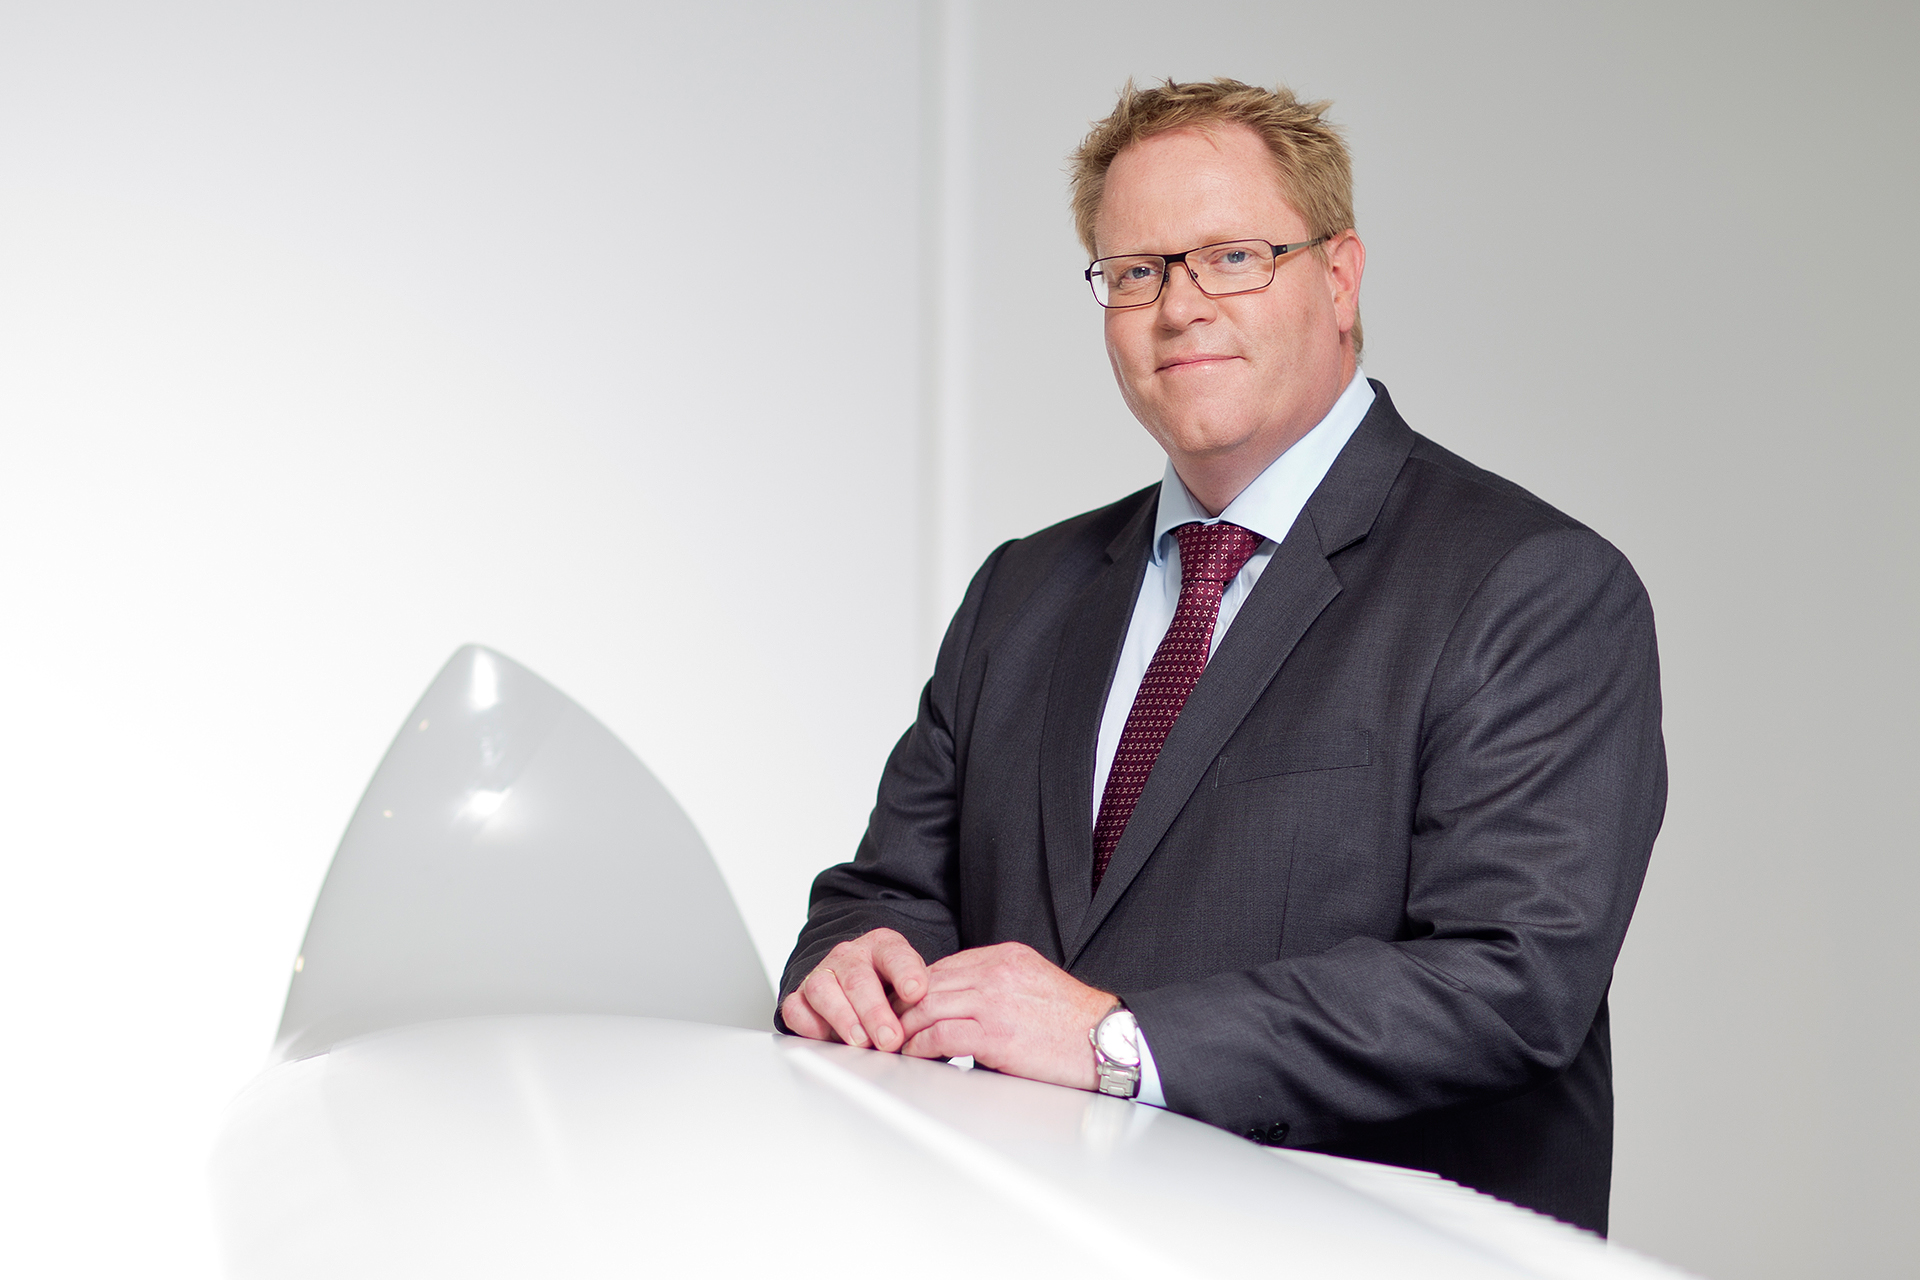 Morten Rasmussen, Head of Research & Development at Siemens Wind Power A/S